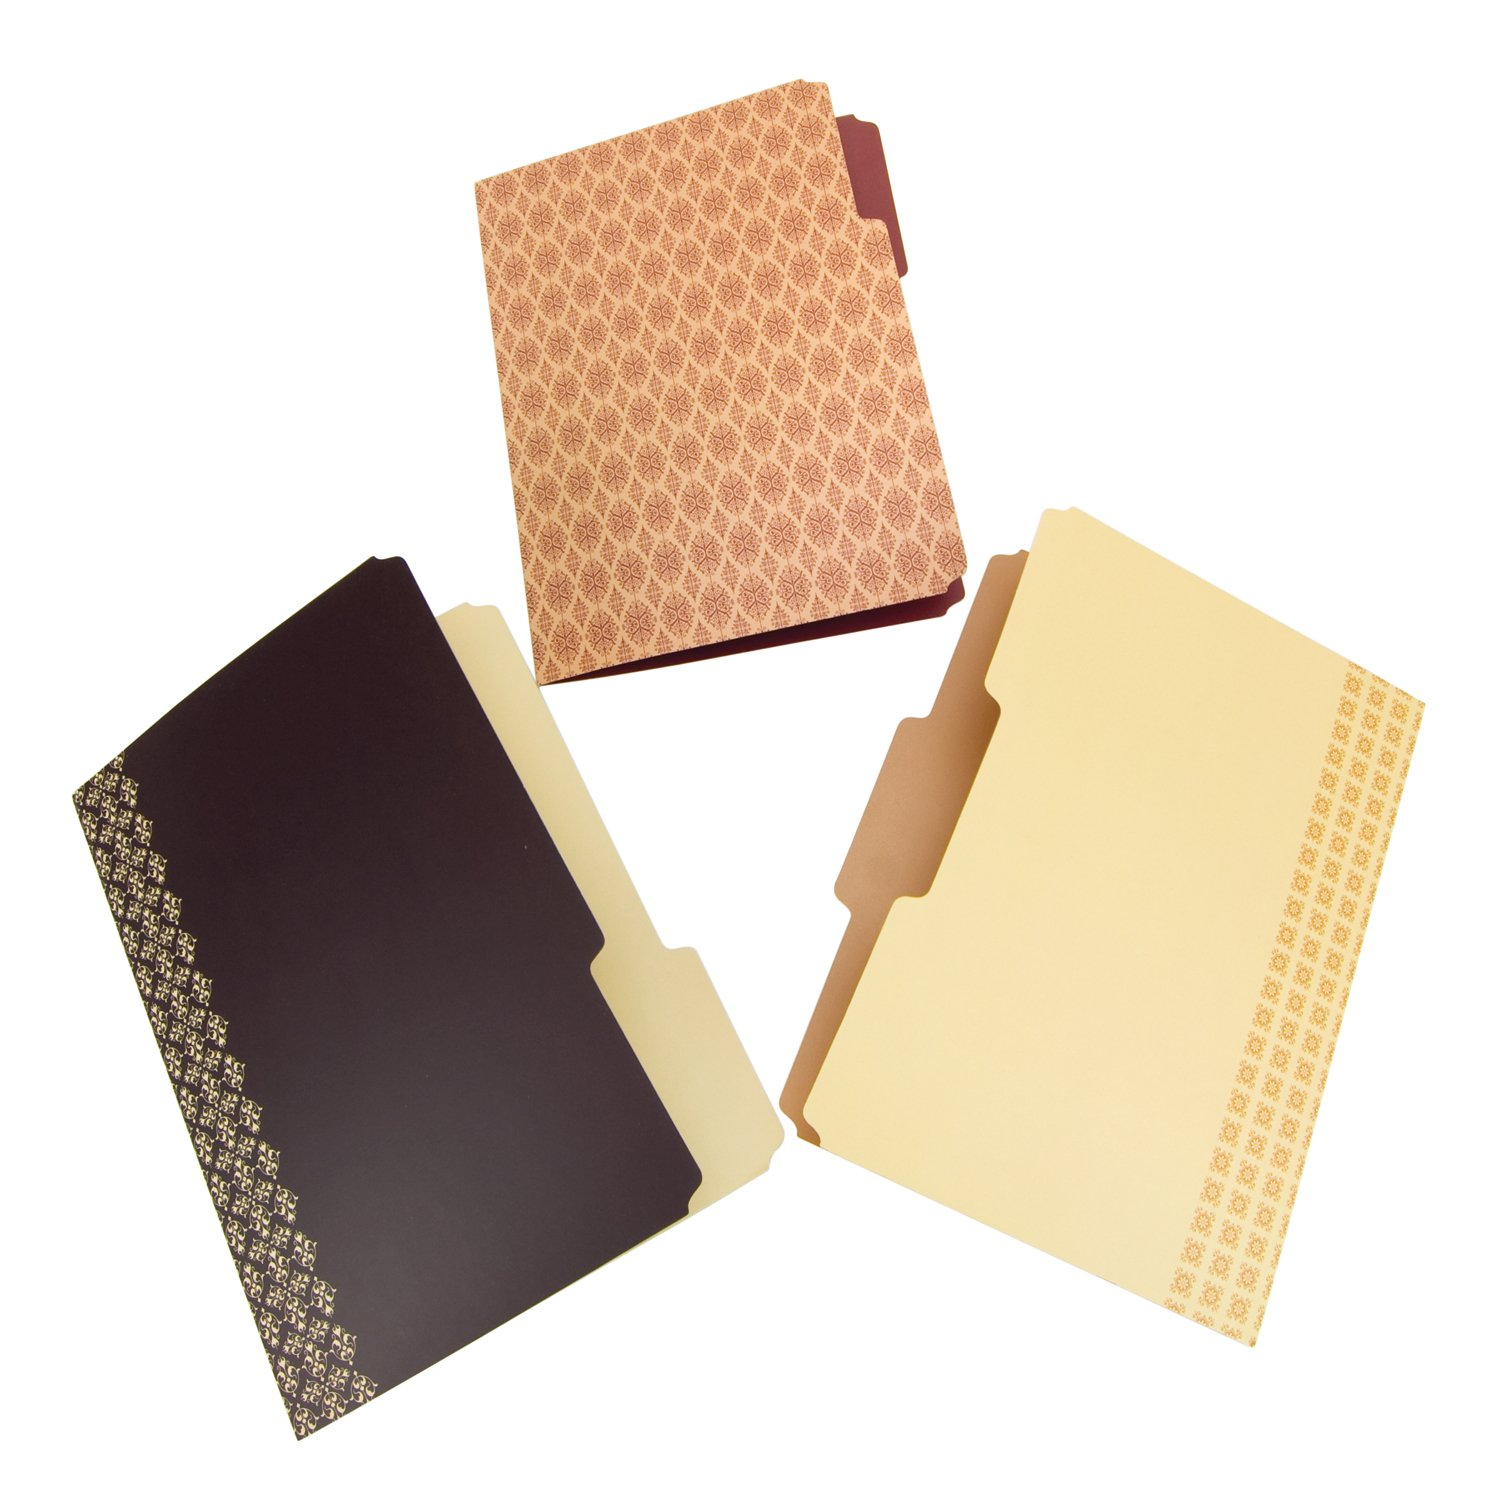 Amazon.com : Wilson Jones Workstyle Decorative Casebound File ...